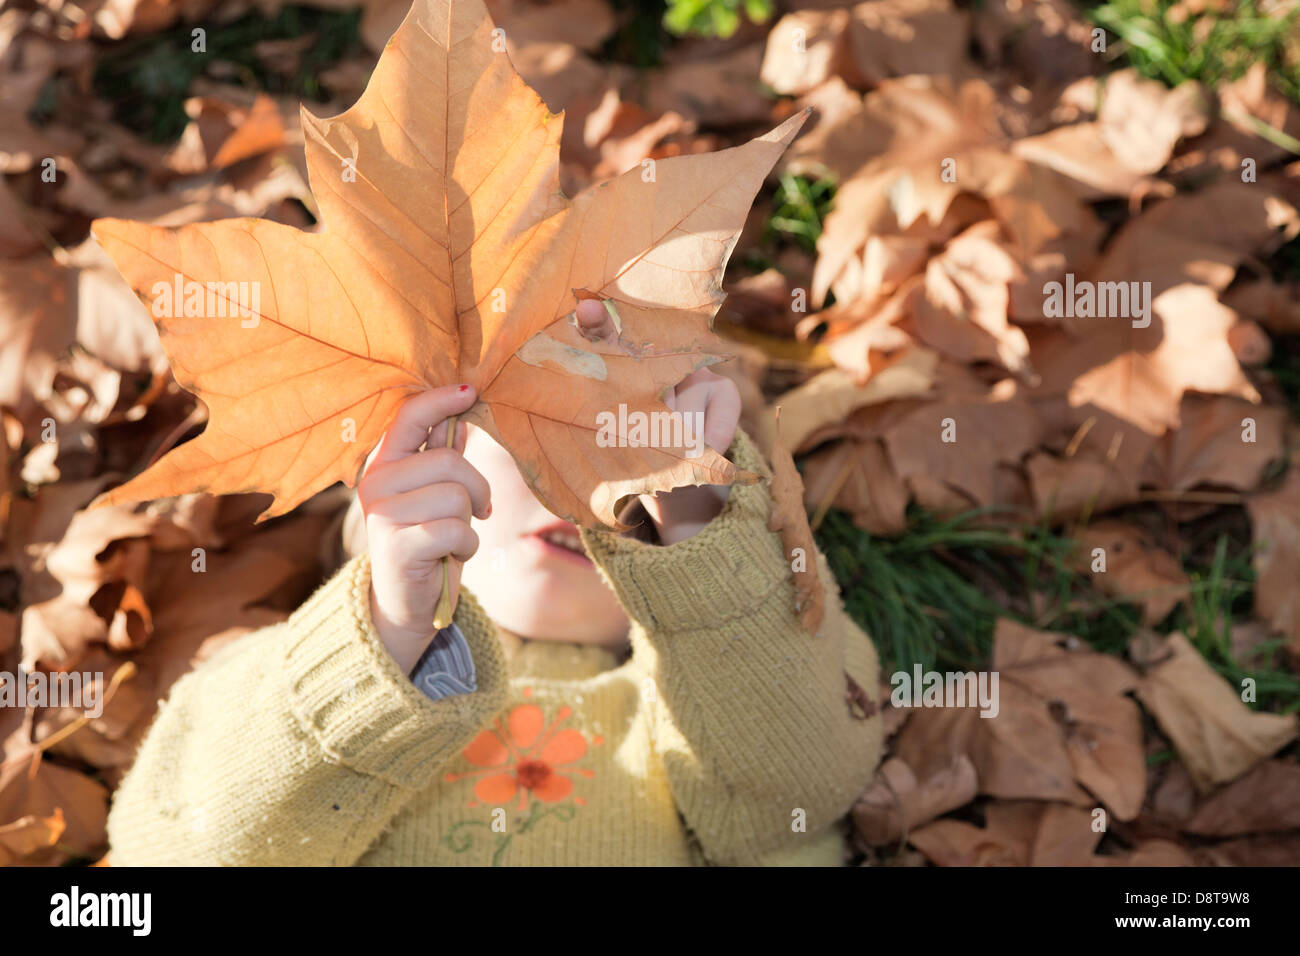 Seven year-old girl lying on the ground, sticking her finger through an autumn leave - Stock Image